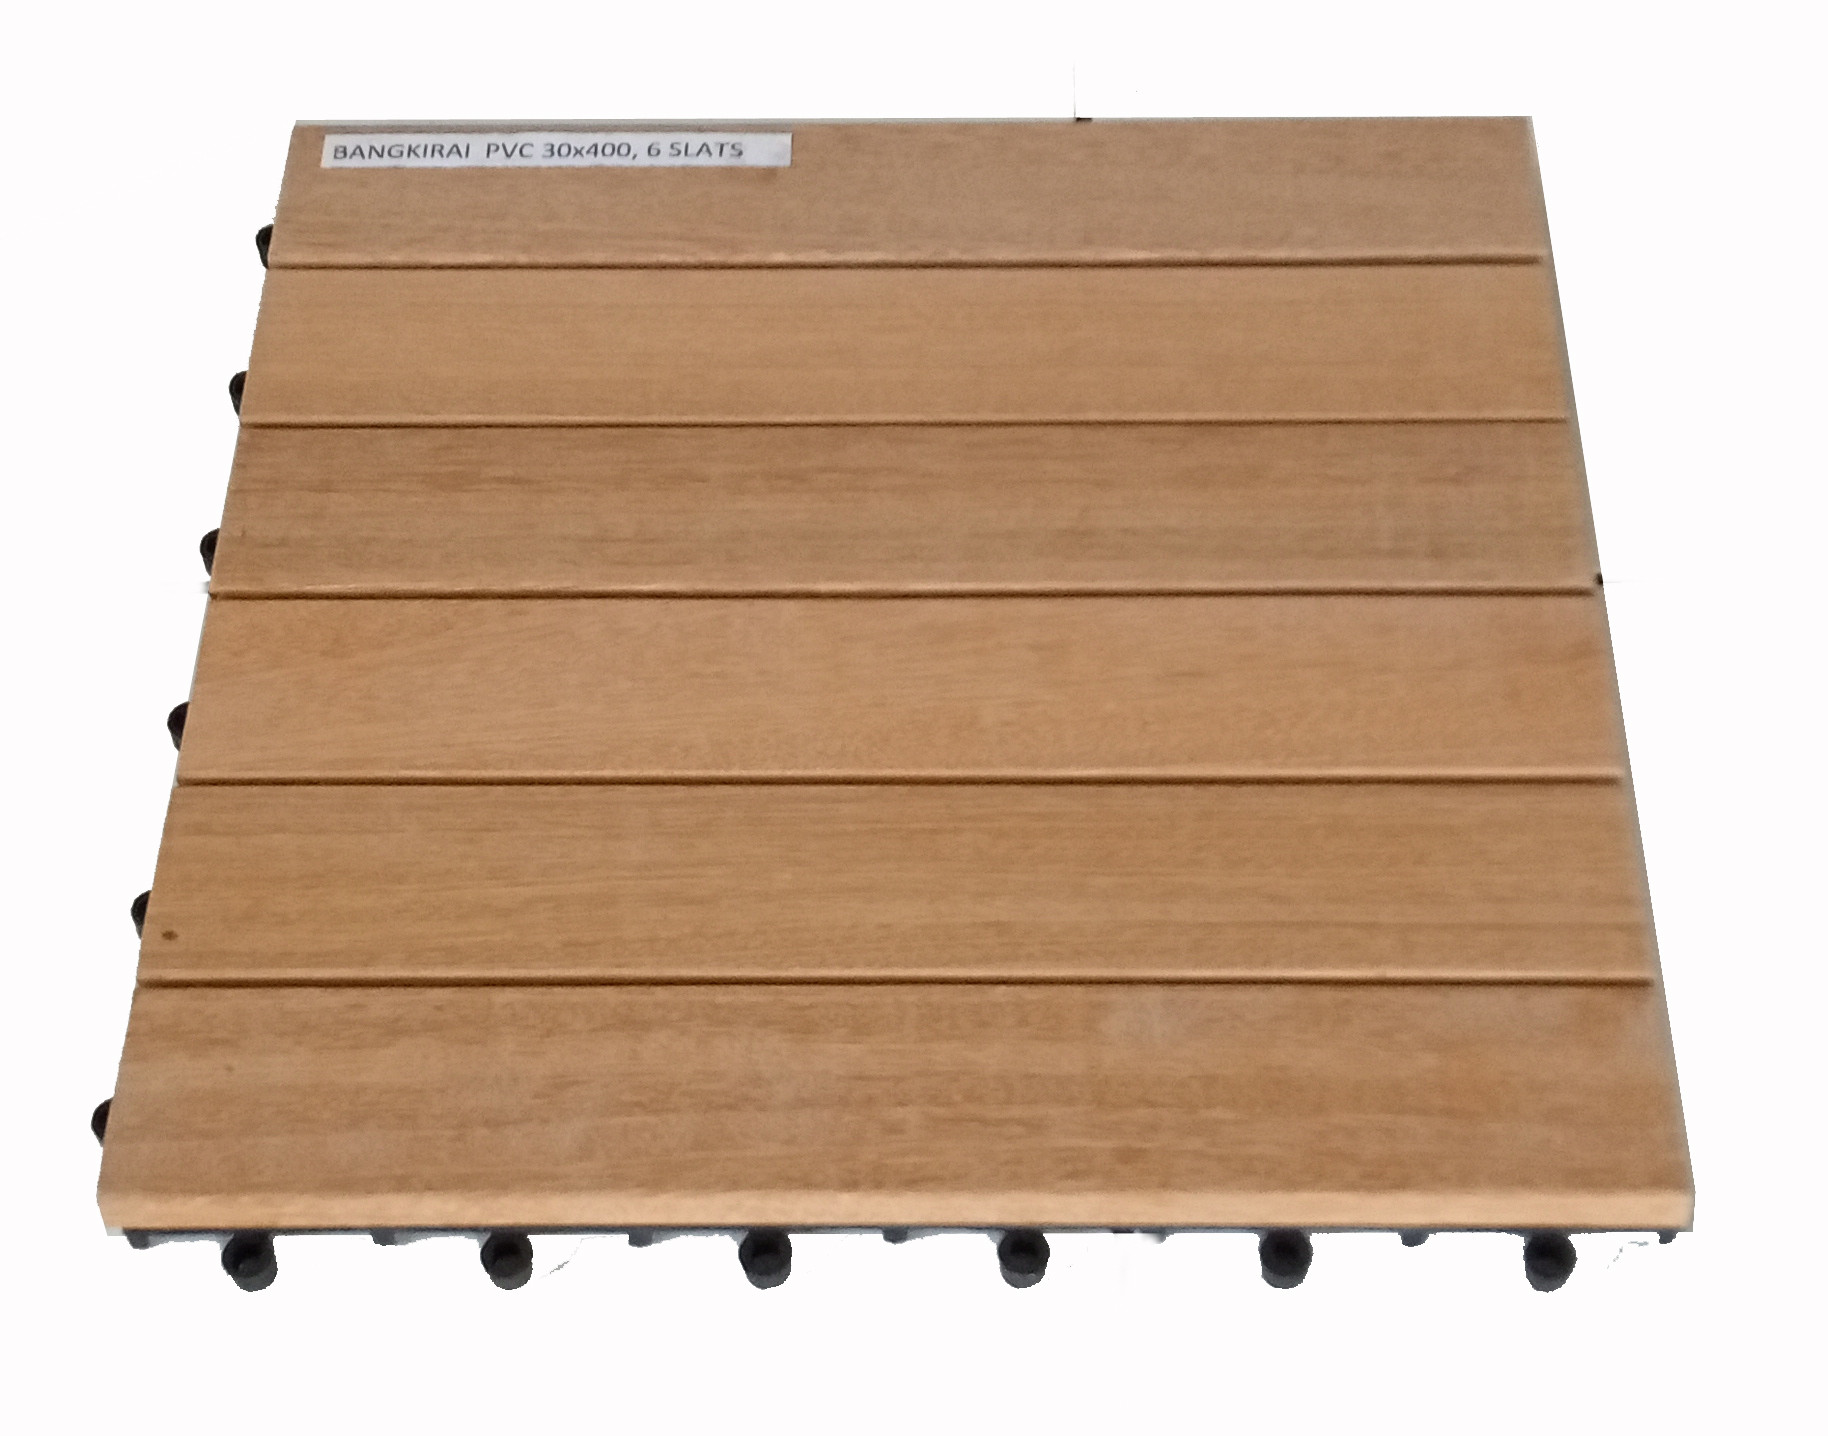 Dalles de terrasse en bois: Bangkirai clipsable 6 lattes --- DISPONIBLES FIN SEPTEMBRE